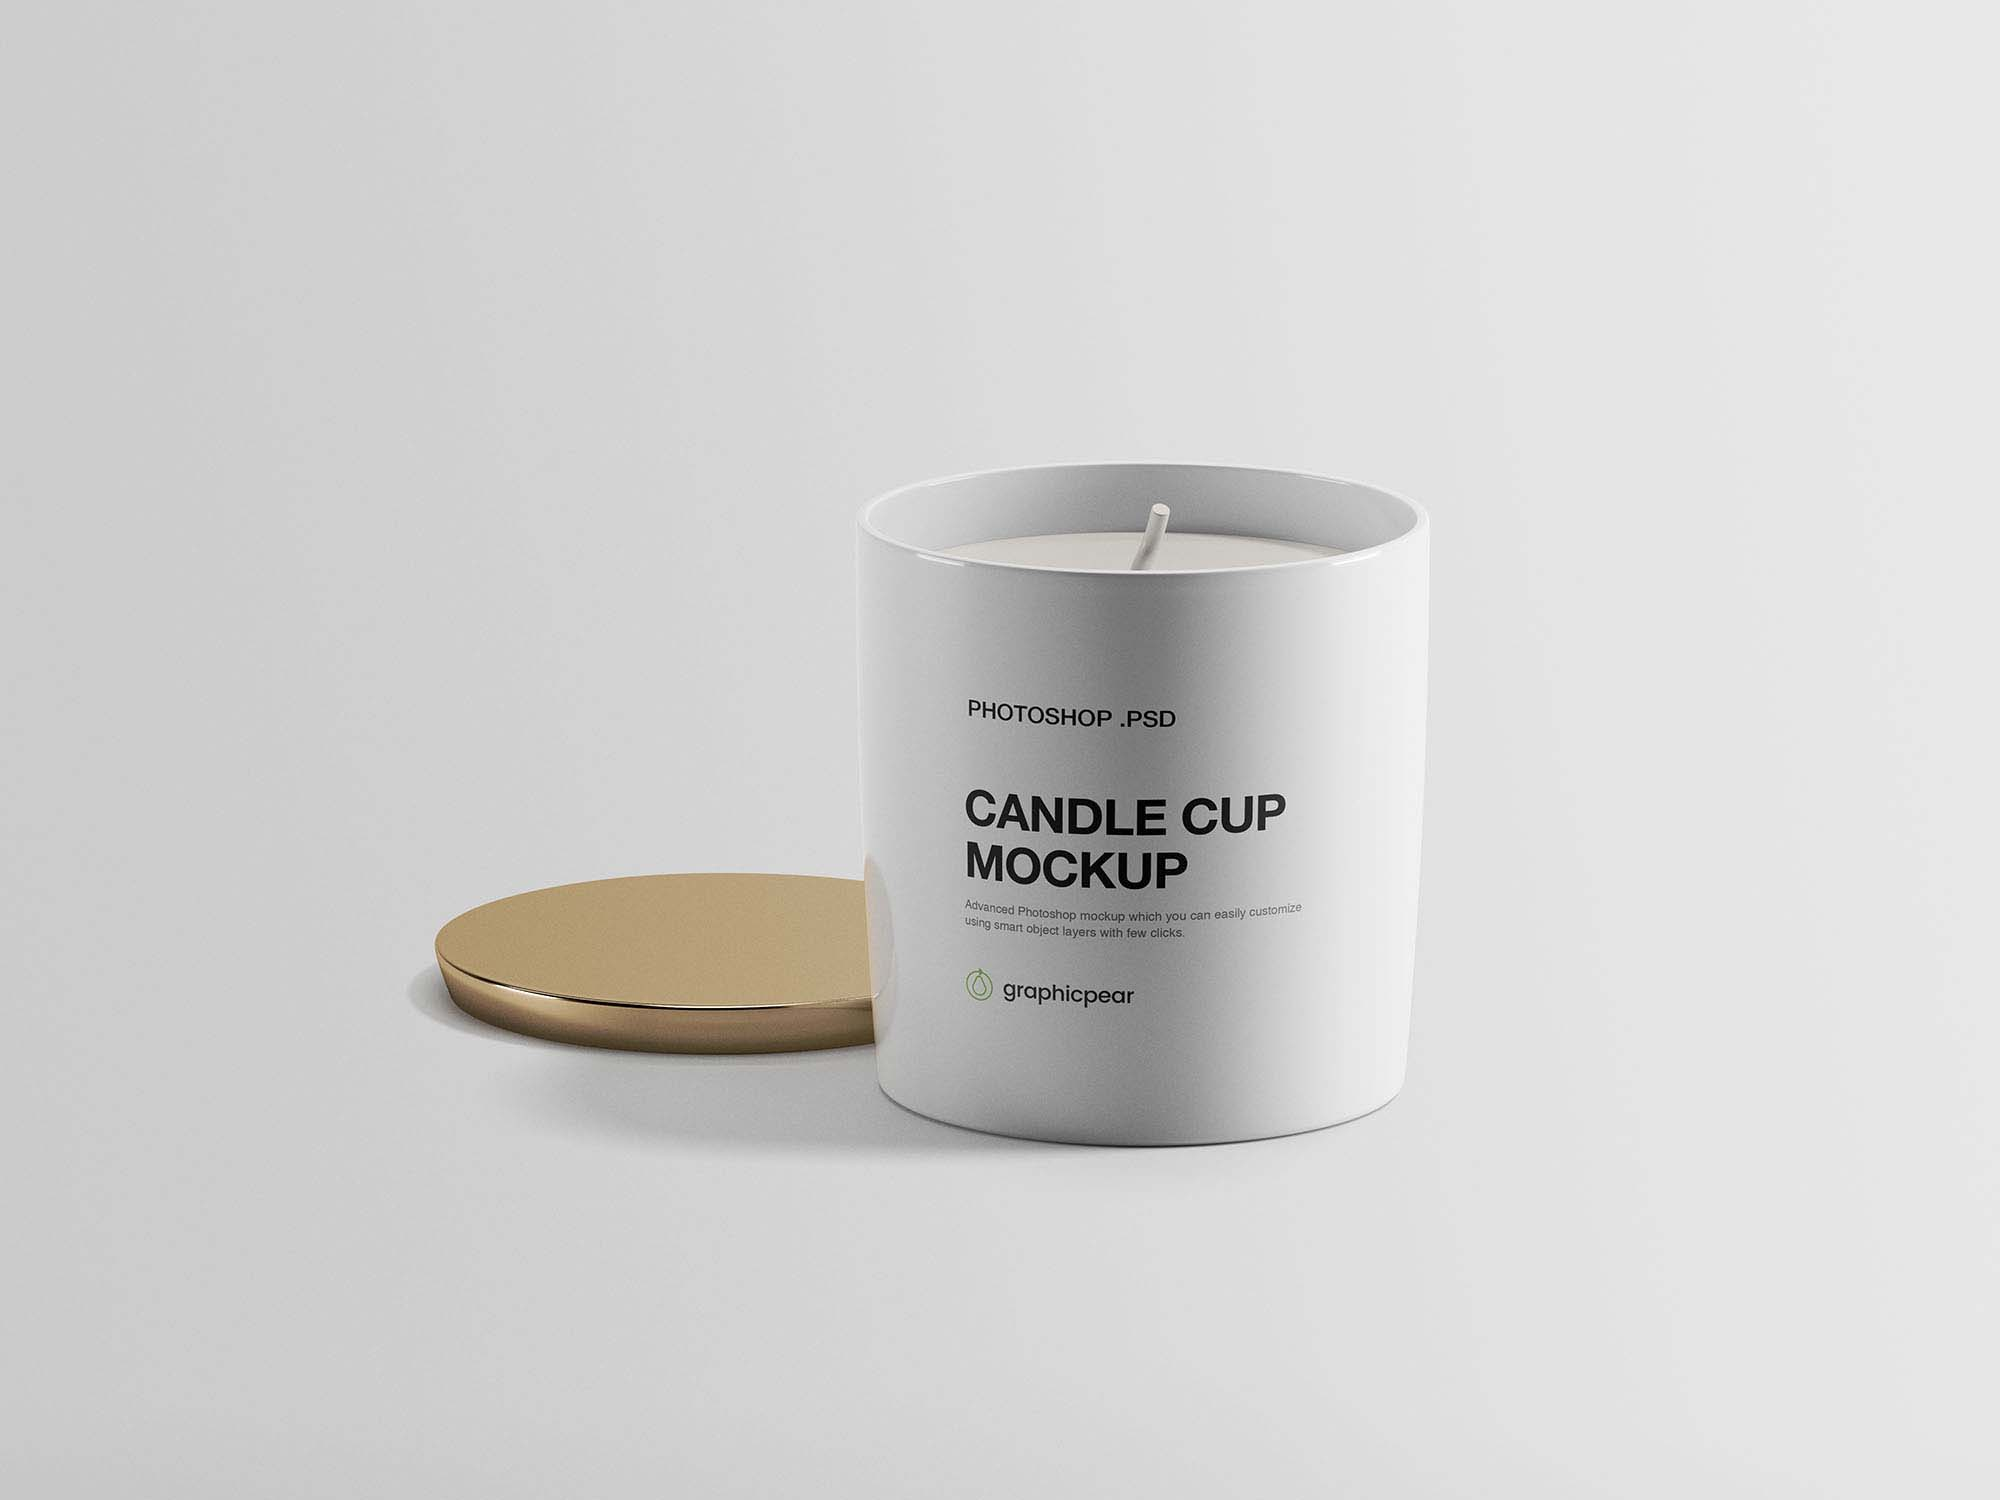 Candle Cup Mockup